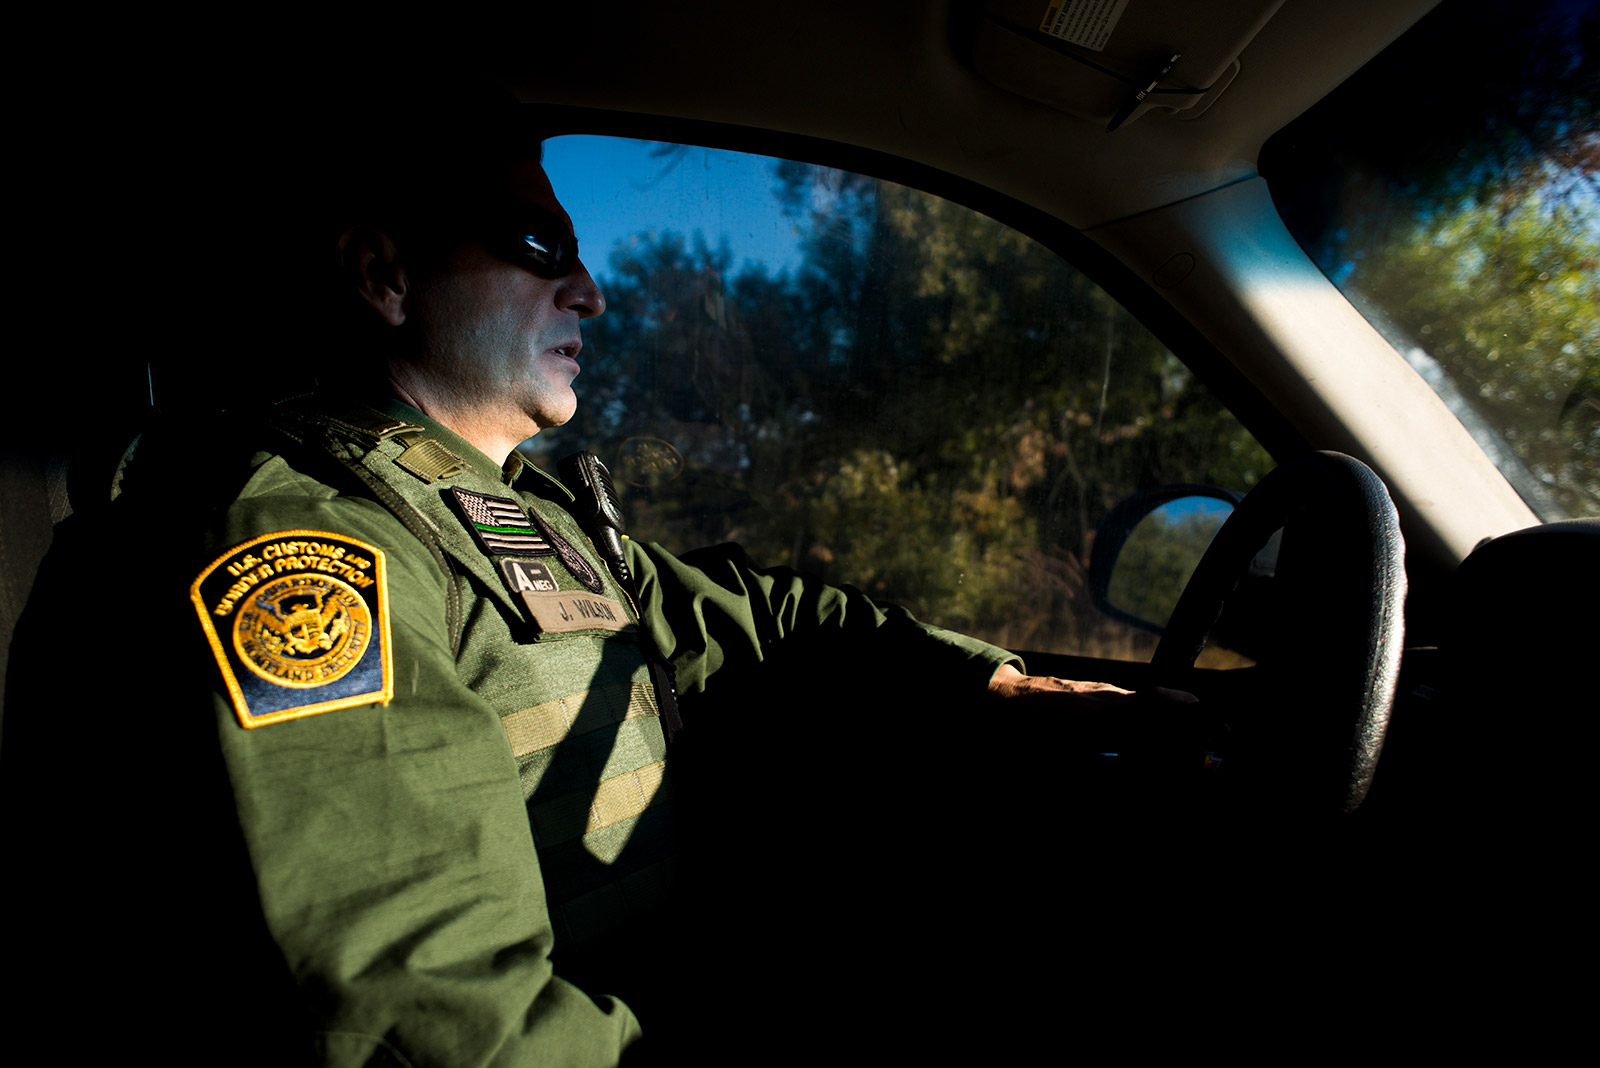 Joshua Wilson, a Border Patrol agent and vice president of the San Diego chapter of the National Border Patrol Council, drives along the U.S.-Mexico border near Jacumba in eastern San Diego County on Sept. 5, 2017. Wilson said some of the newer fencing has helped improve agent safety. <em>(Brandon Quester/inewsource)</em>